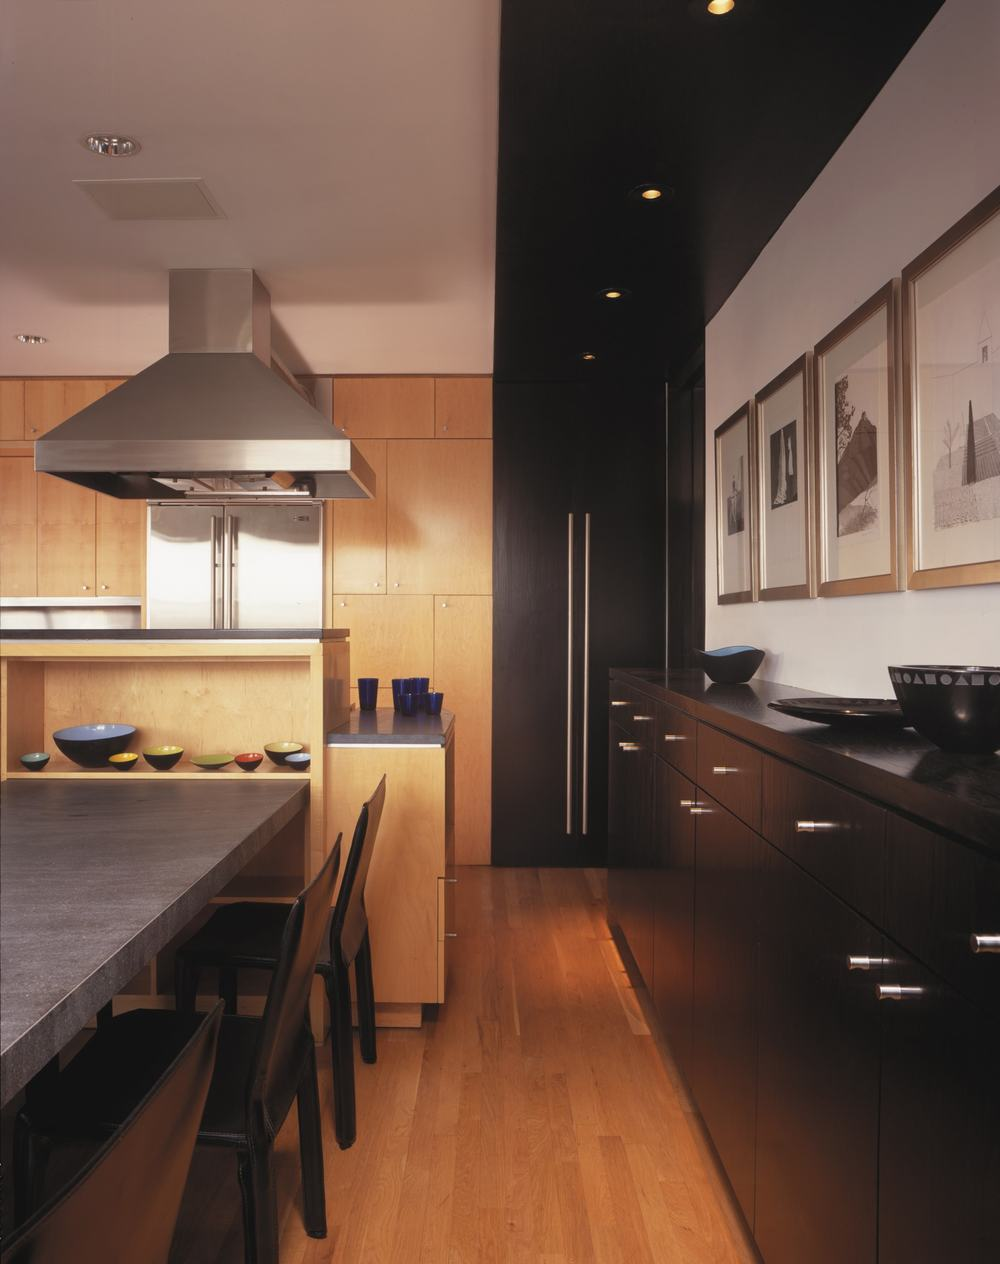 Modern Apartment Renovation | West Village Manhattan New York City | Kitchen Custom Built In Cabinets Wood Floor | RES4